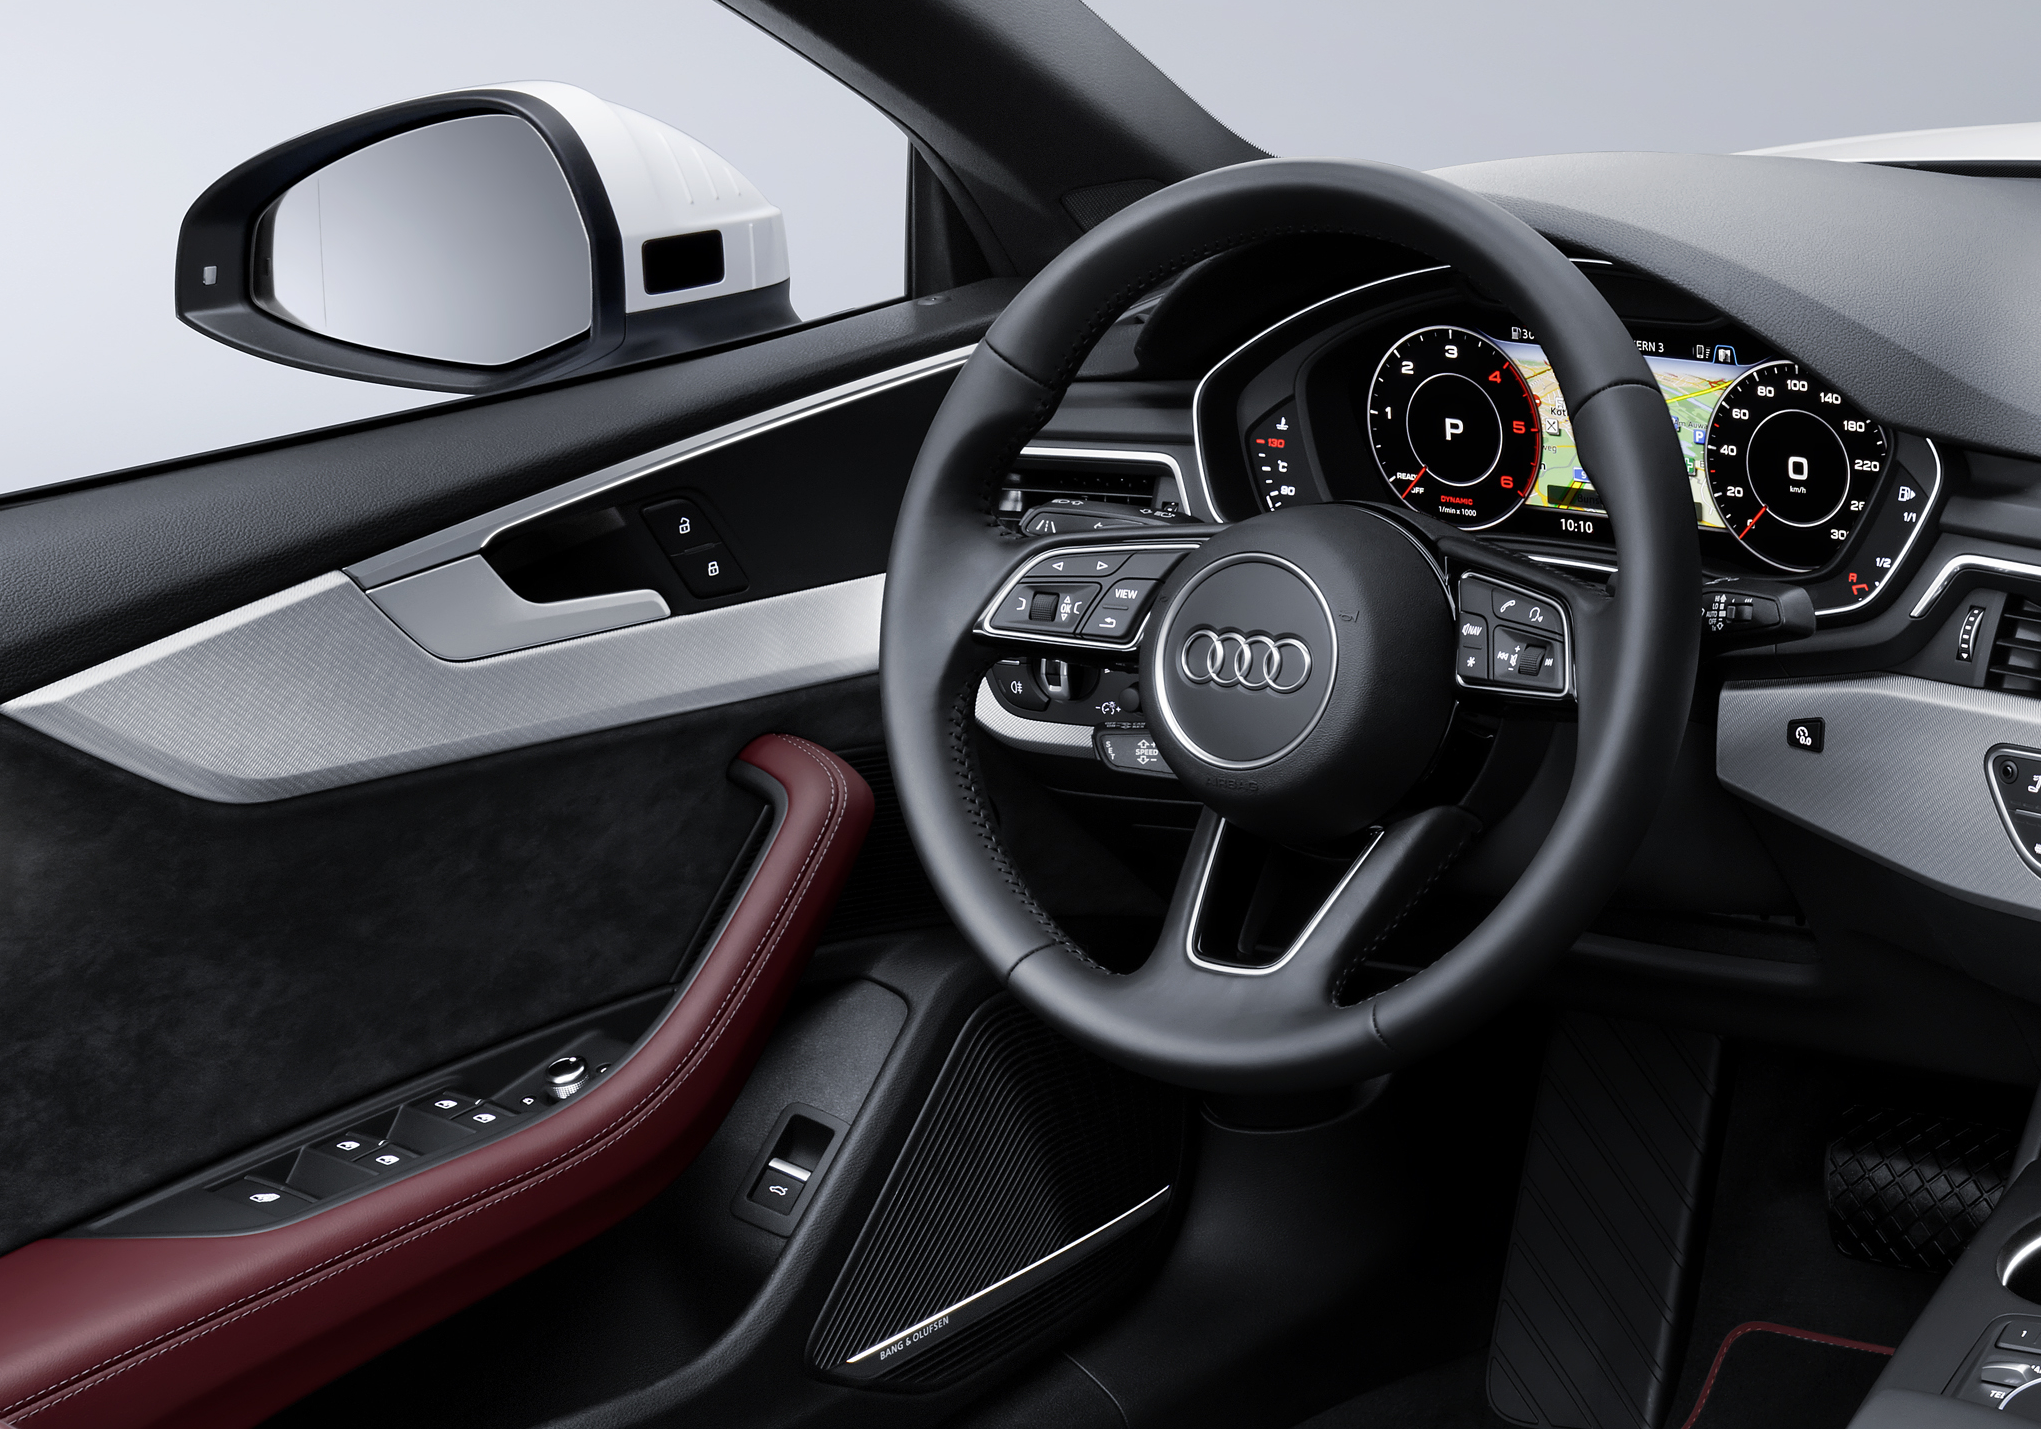 bang olufsen 3d sound system in the new audi a5. Black Bedroom Furniture Sets. Home Design Ideas